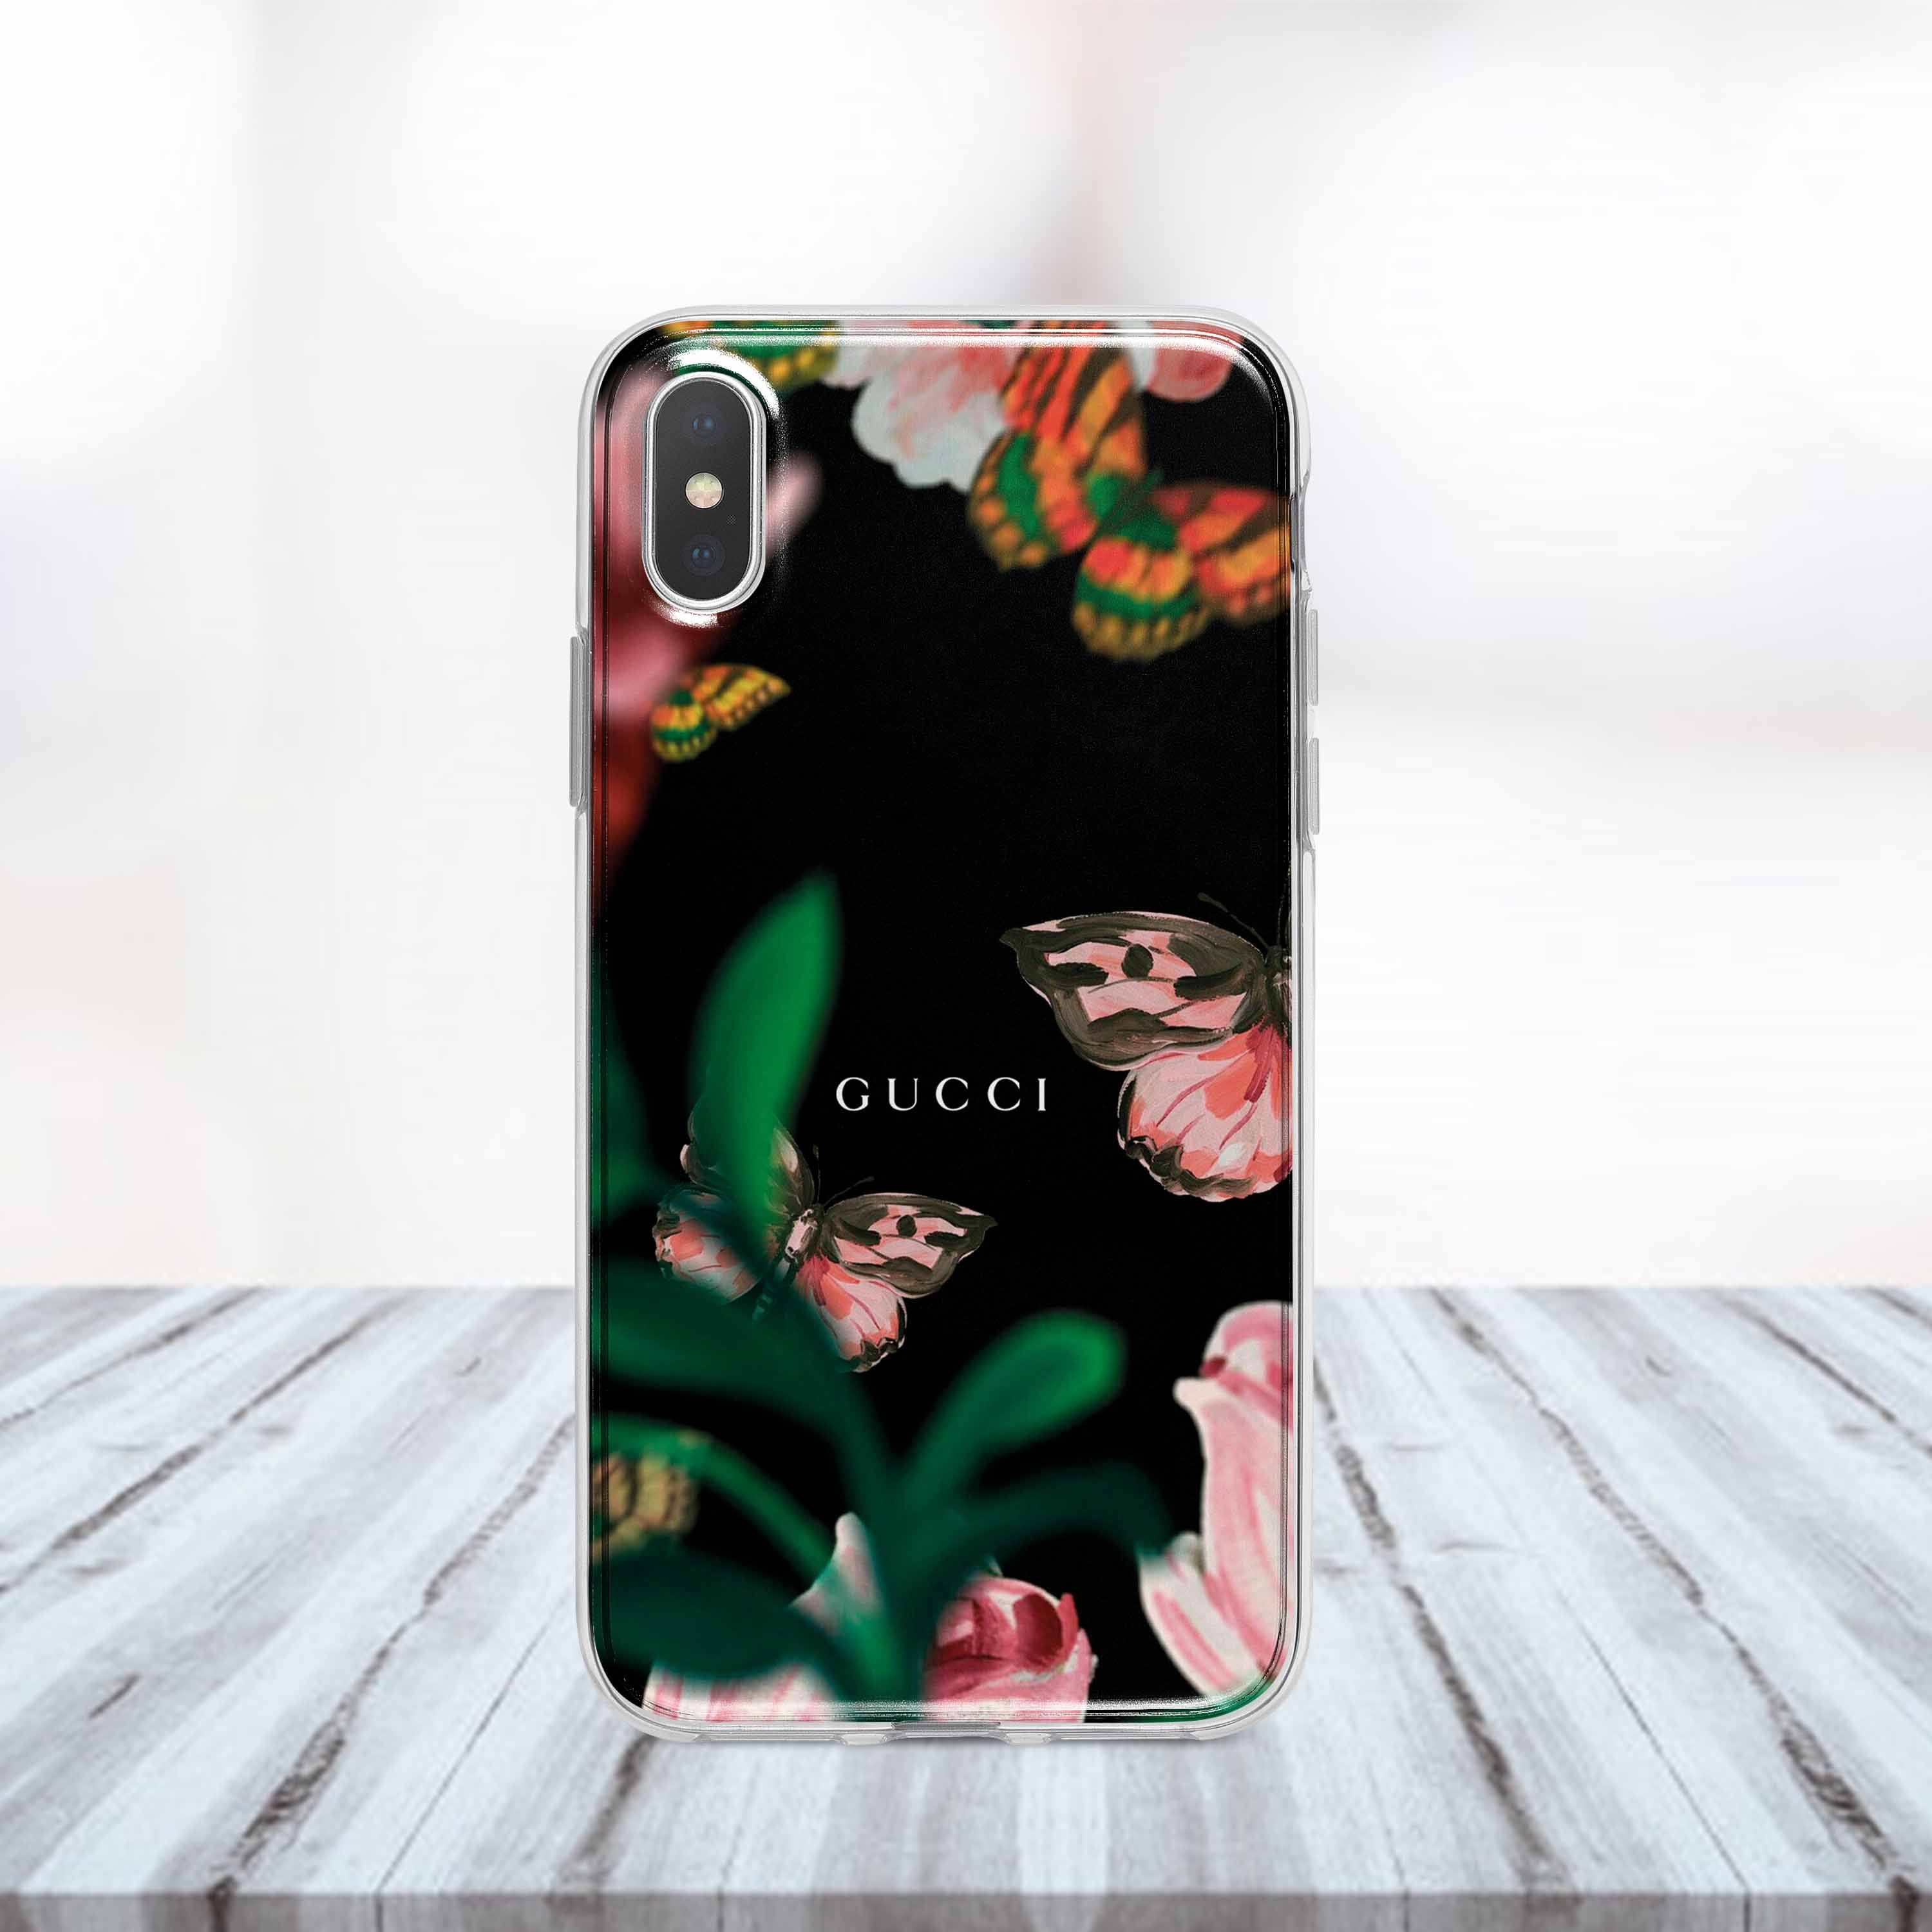 iPhone Samsung Gucci case Iphone cases, Samsung cases